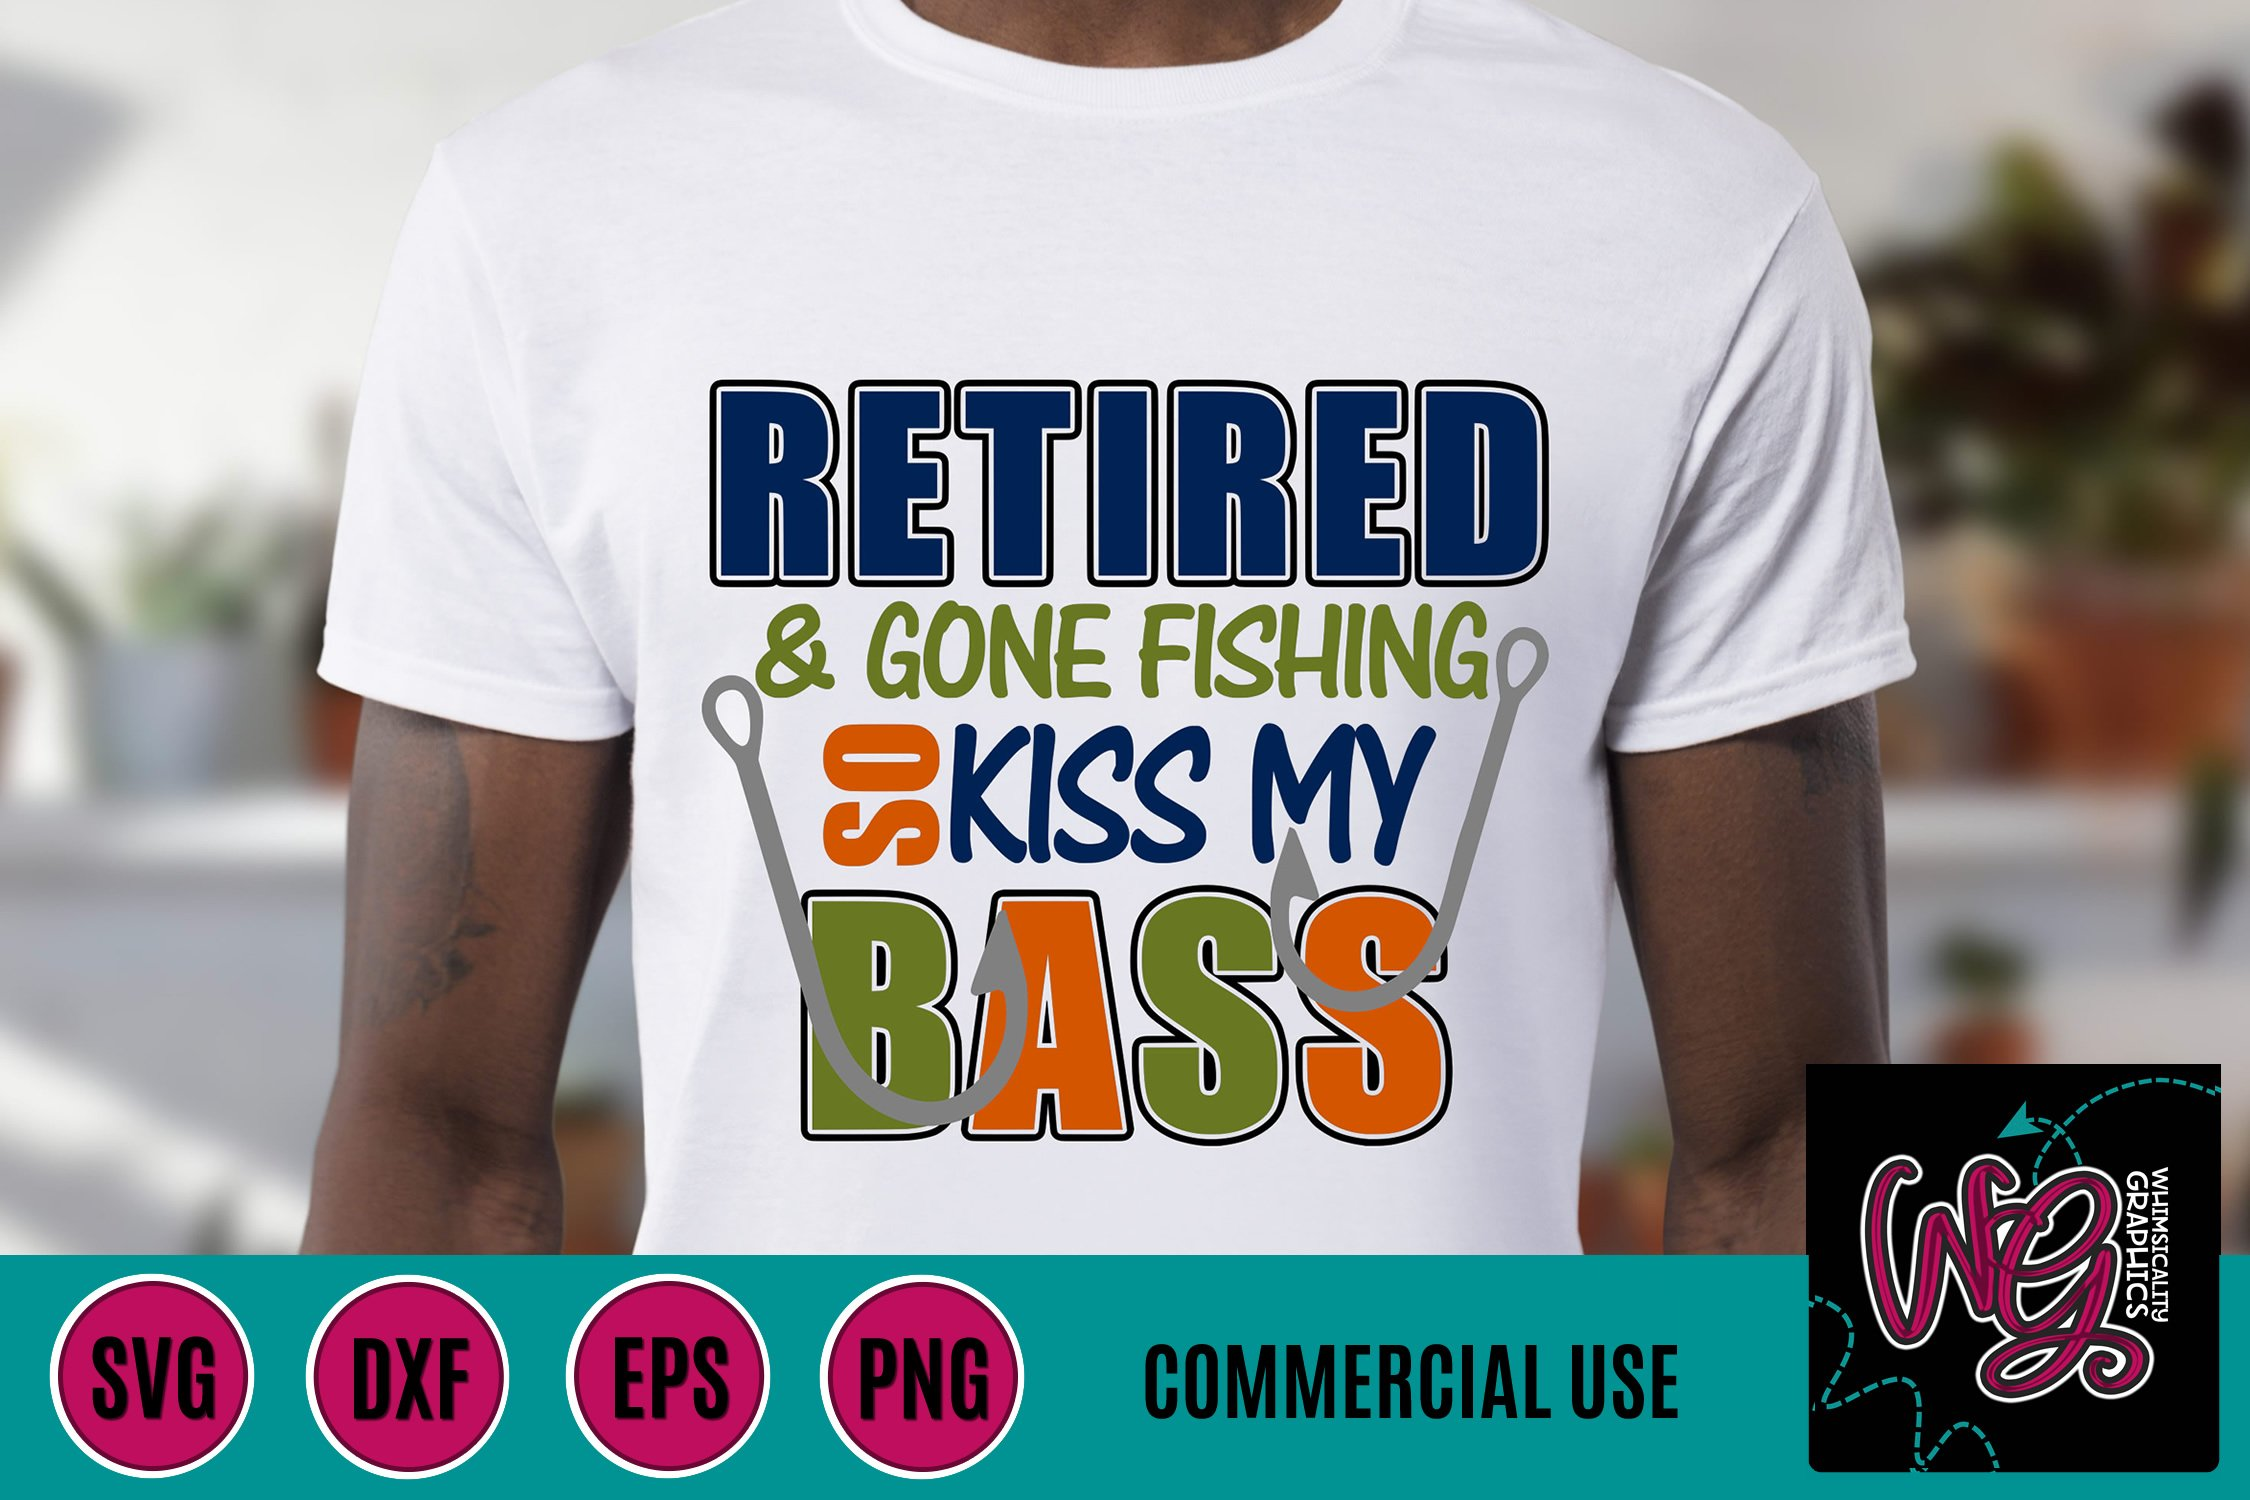 Download Retired Gone Fishing So Kiss My Bass Svg Dxf Png Eps Comm 293066 Svgs Design Bundles